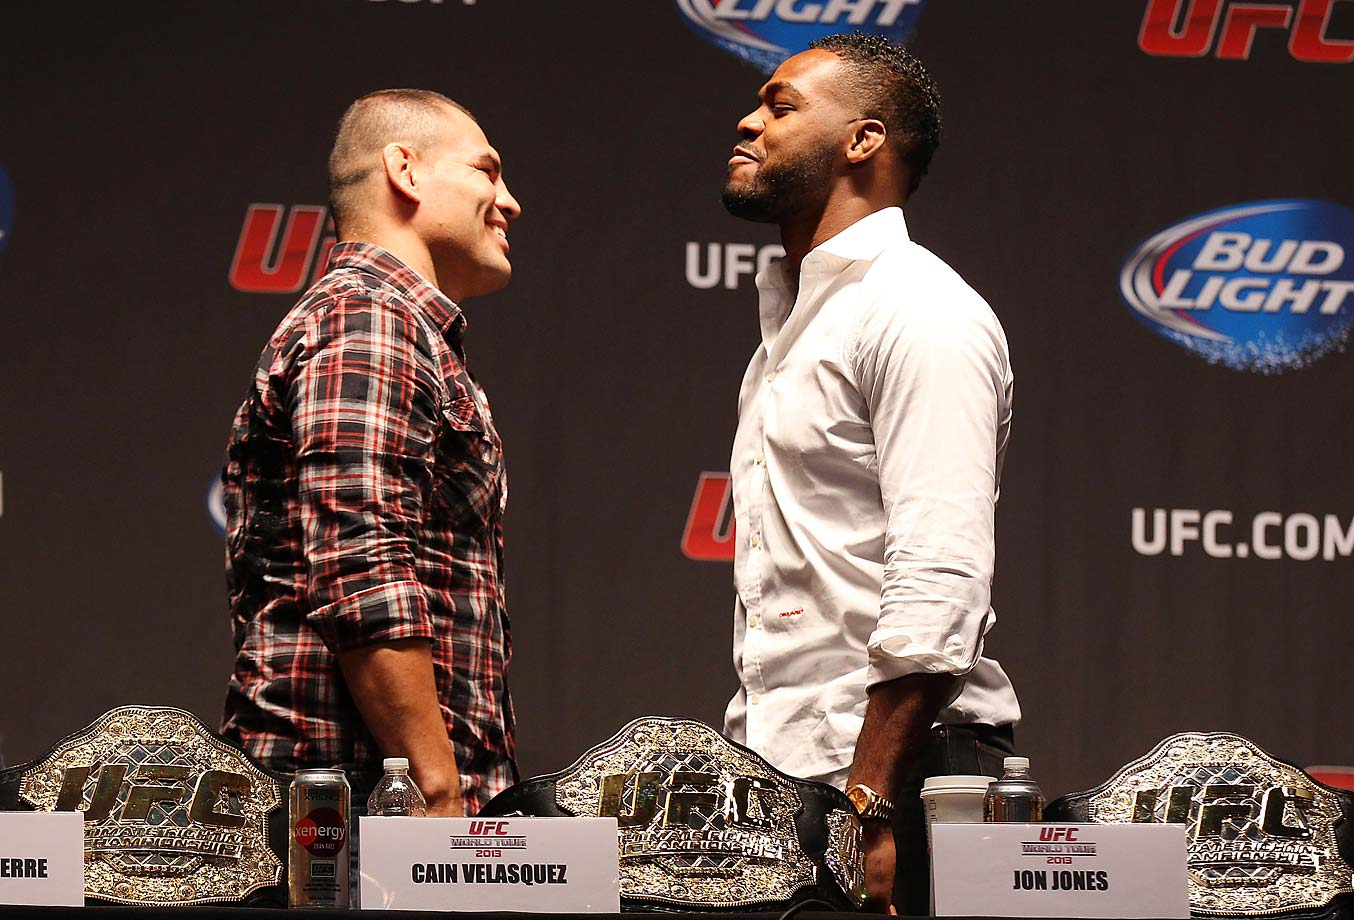 In what could be a potential dream fight, Jones has a face off with Cain Velasquez at a press conference in New York City.